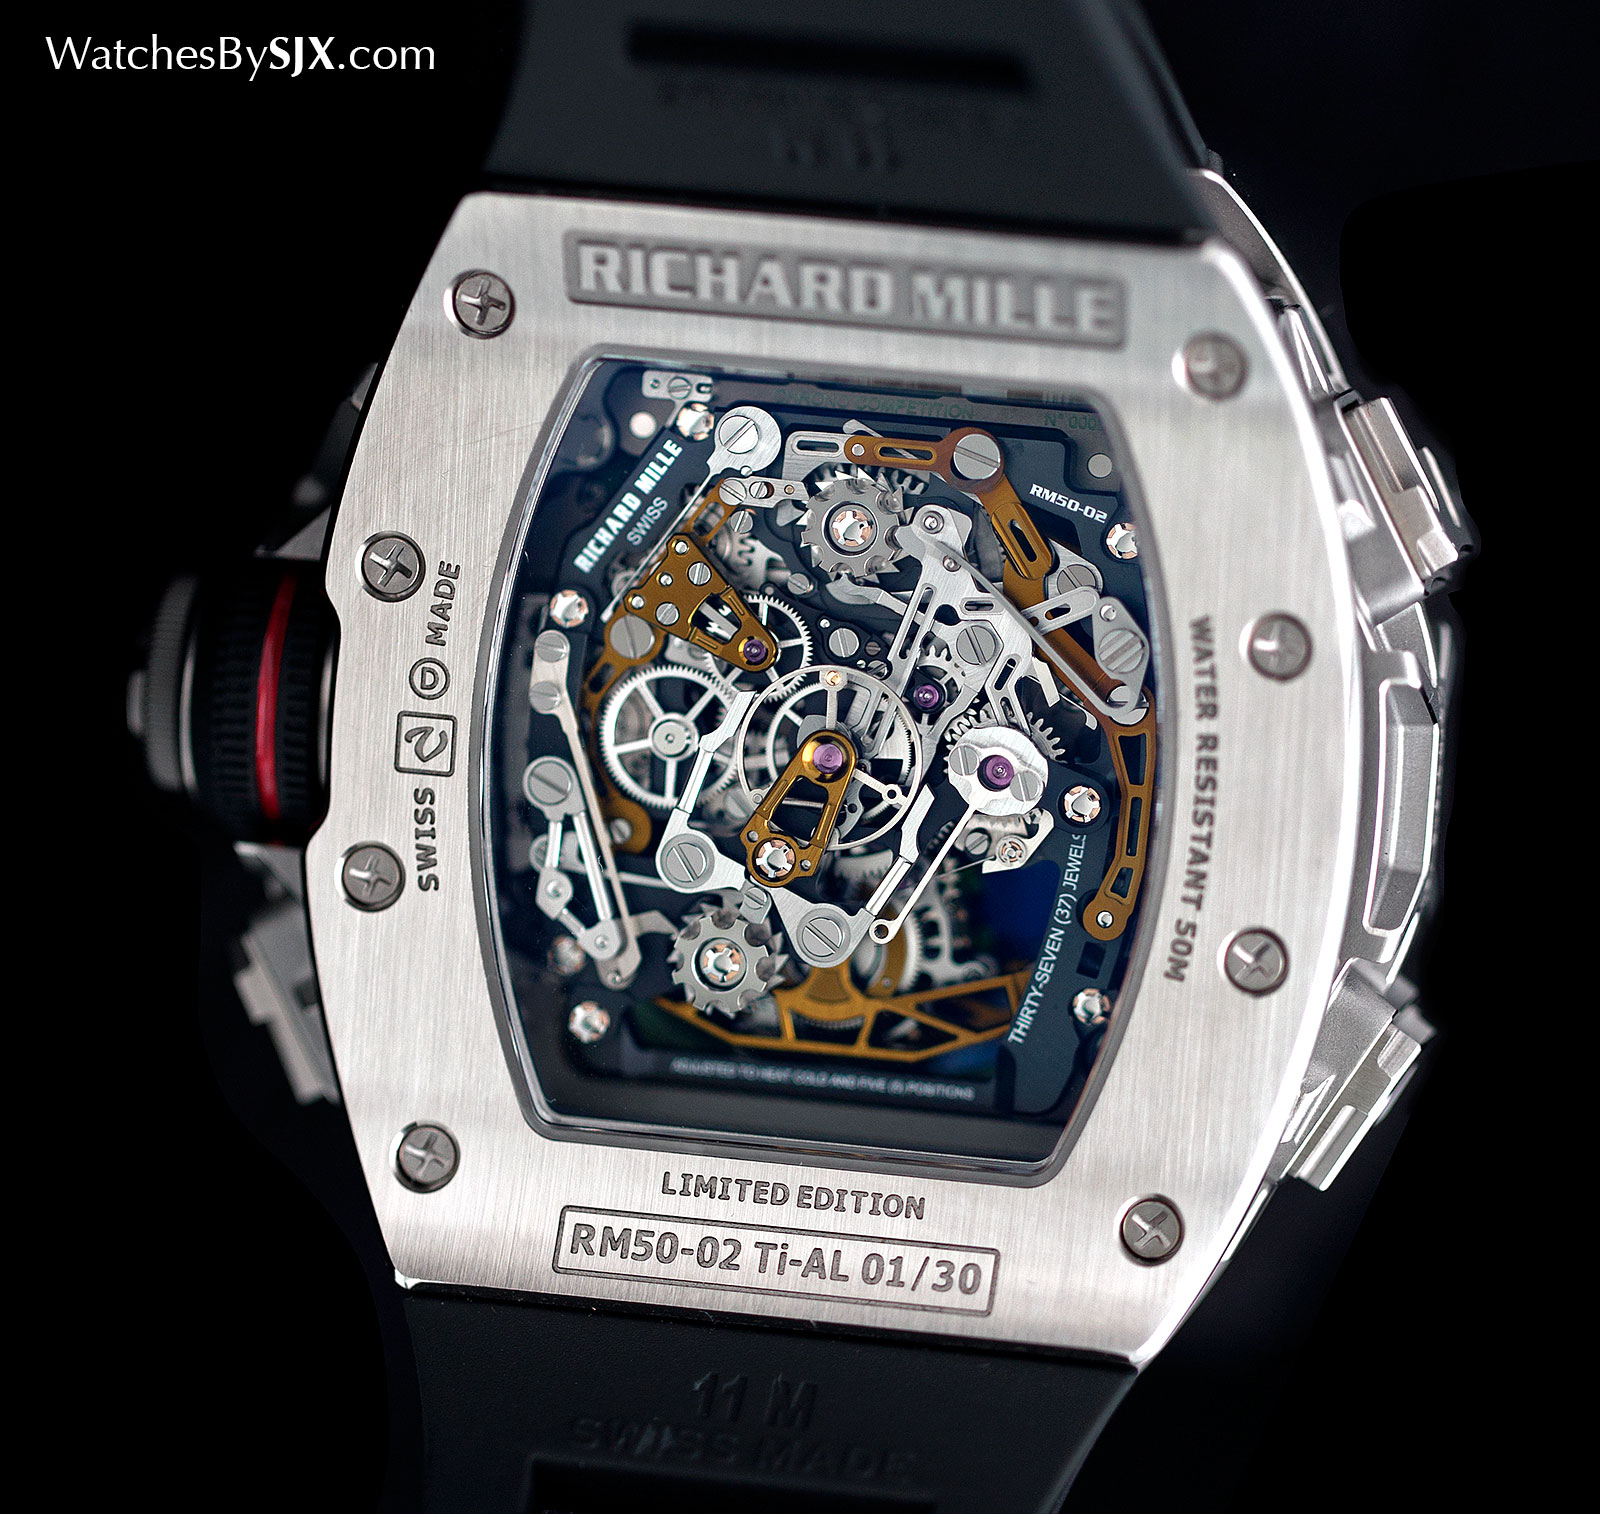 Richard Mille RM 50-02 ACJ Tourbillon Split Seconds Chronograph 4